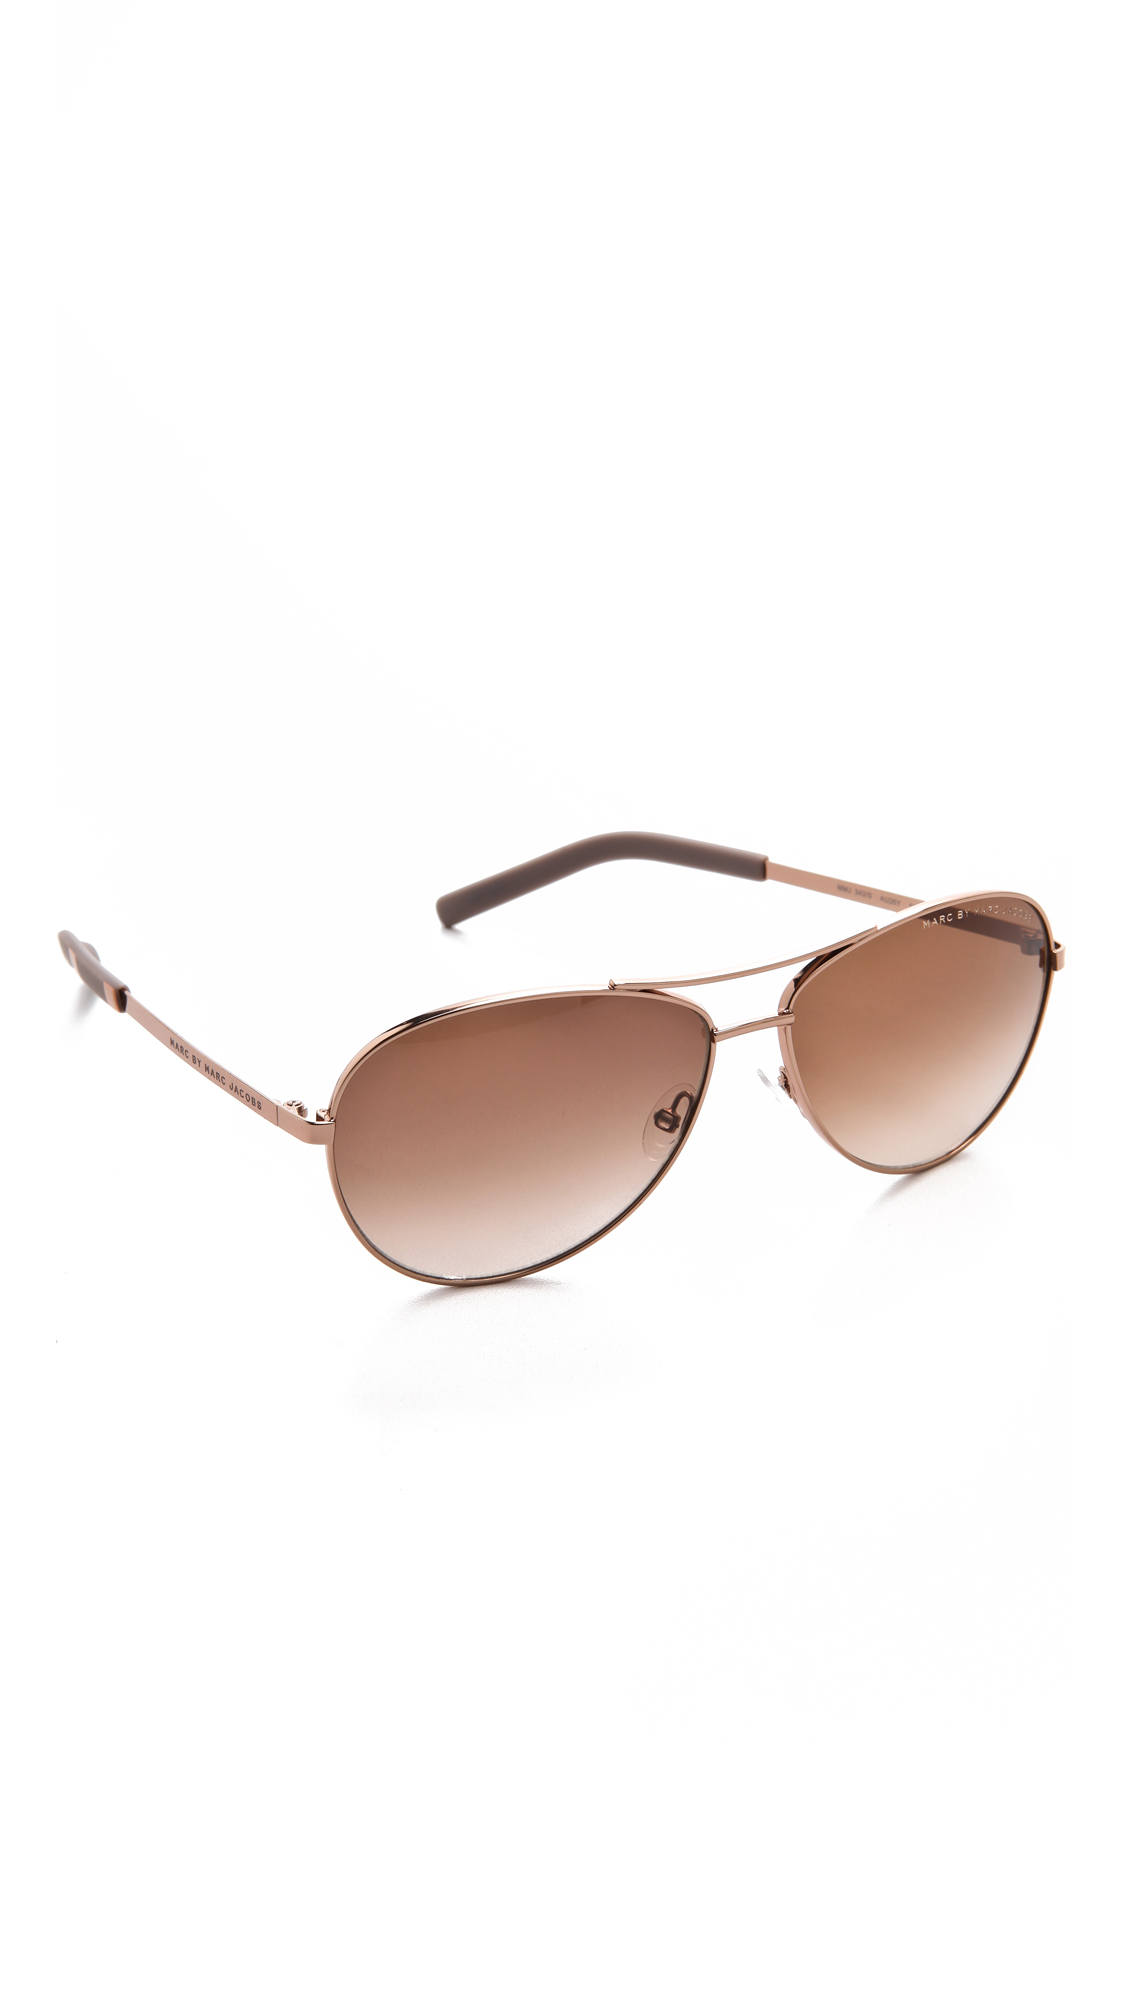 32fe5395048 Marc by Marc Jacobs Metal Aviator Sunglasses